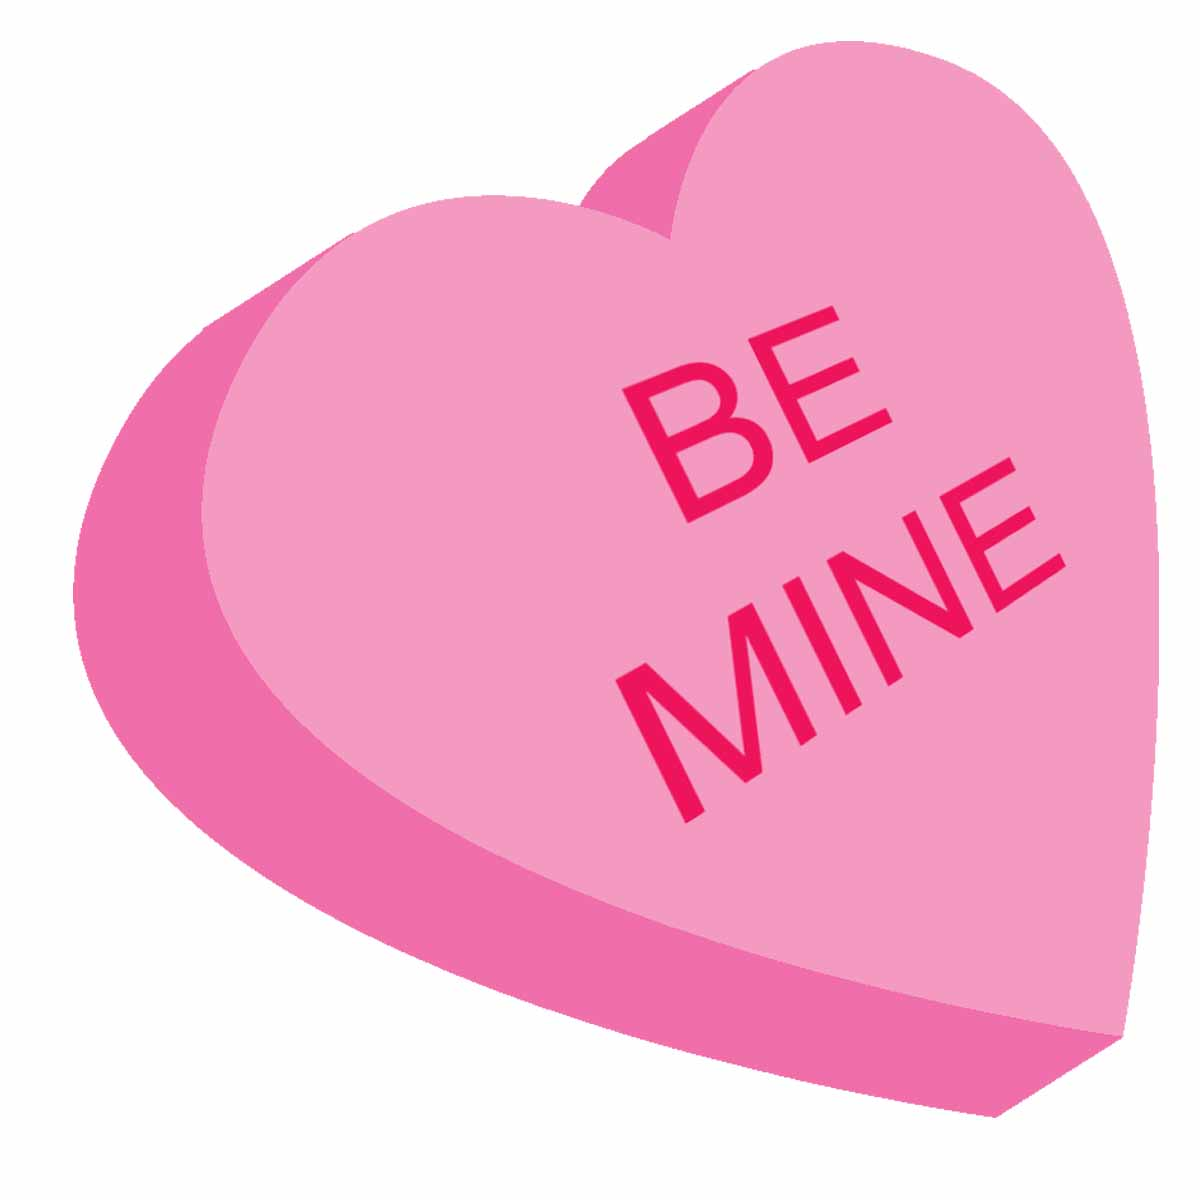 Romantic Valentine Candy Hearts Clipart -Romantic Valentine Candy Hearts Clipart Funny Pictures Shake The-9